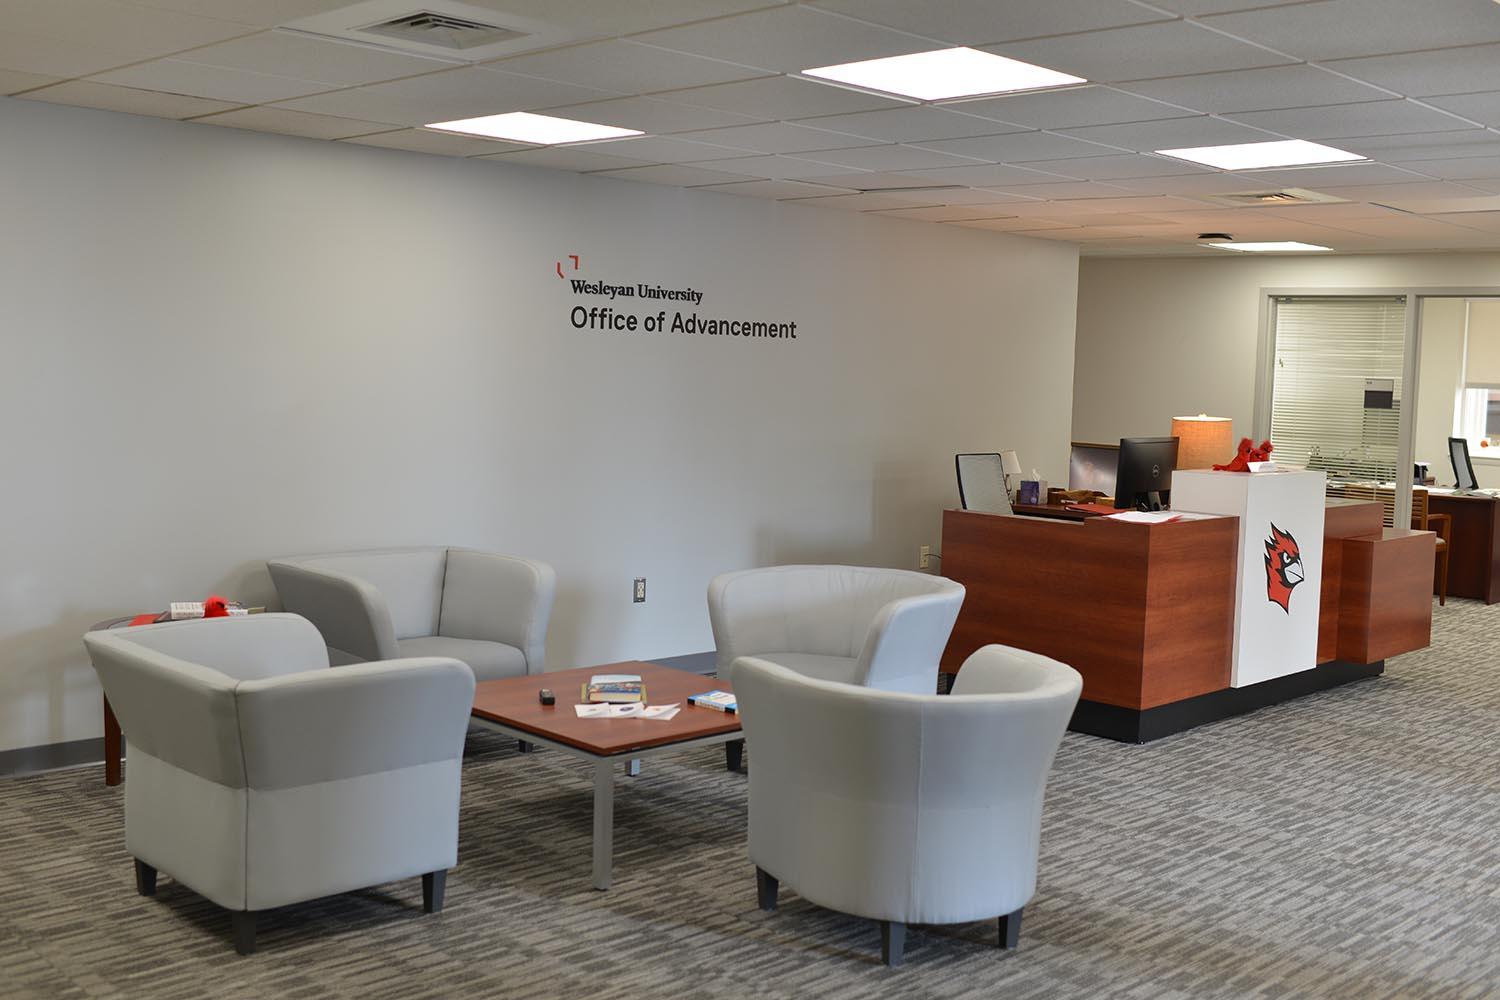 Guests are greeted in the Office of Advancement lobby.